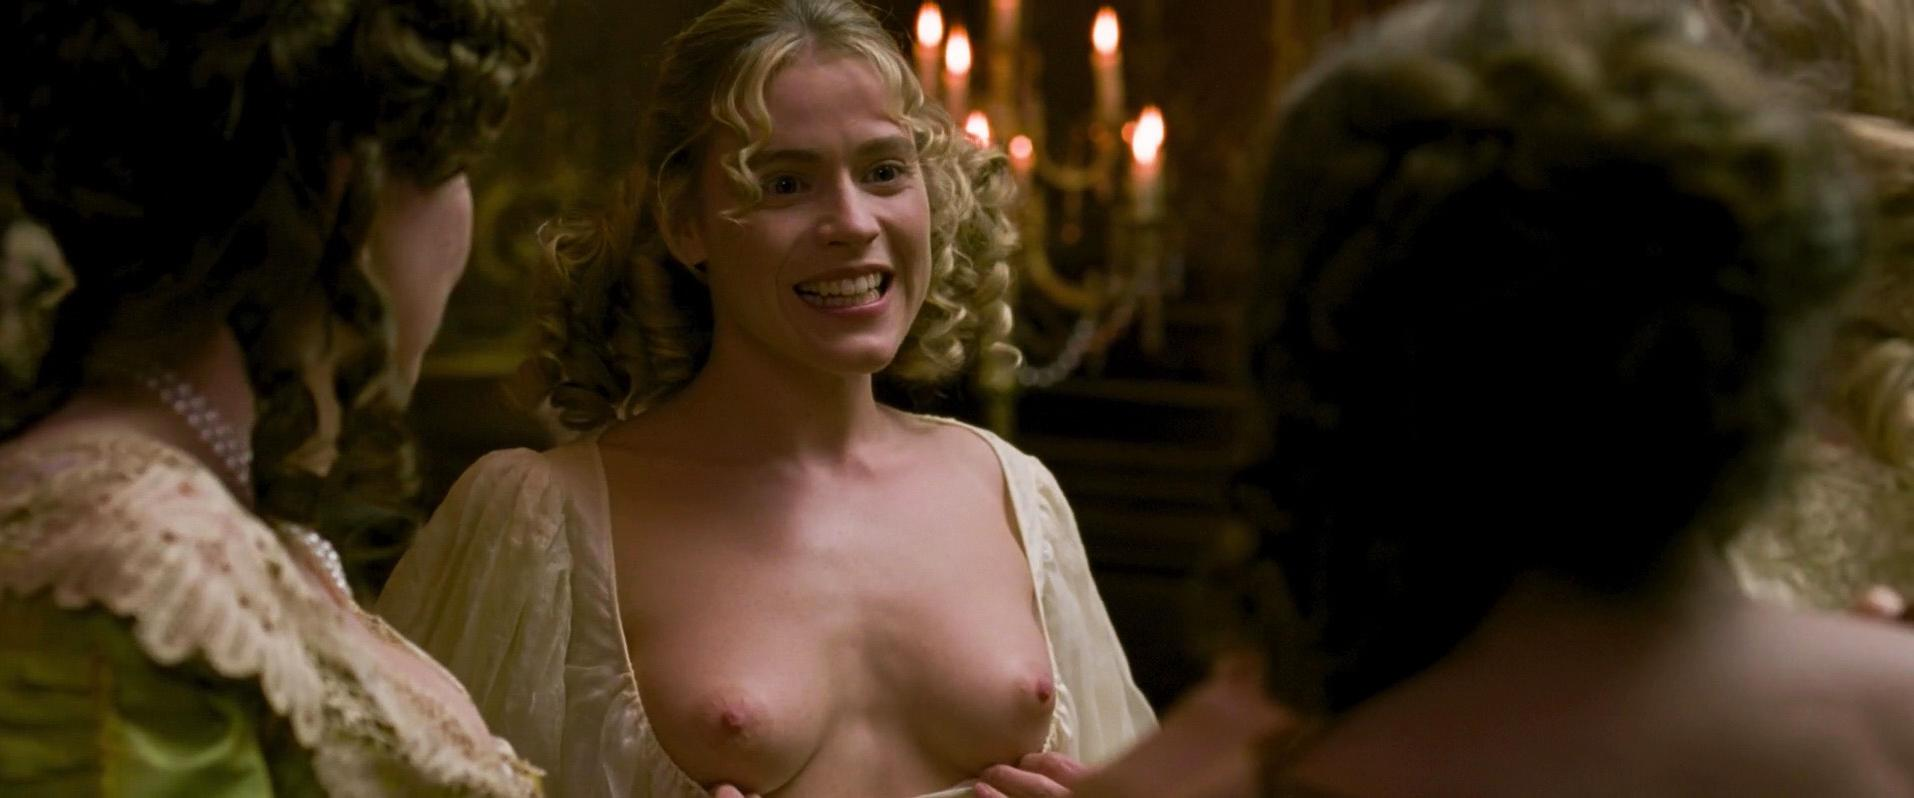 Breast of kate winslet-7934